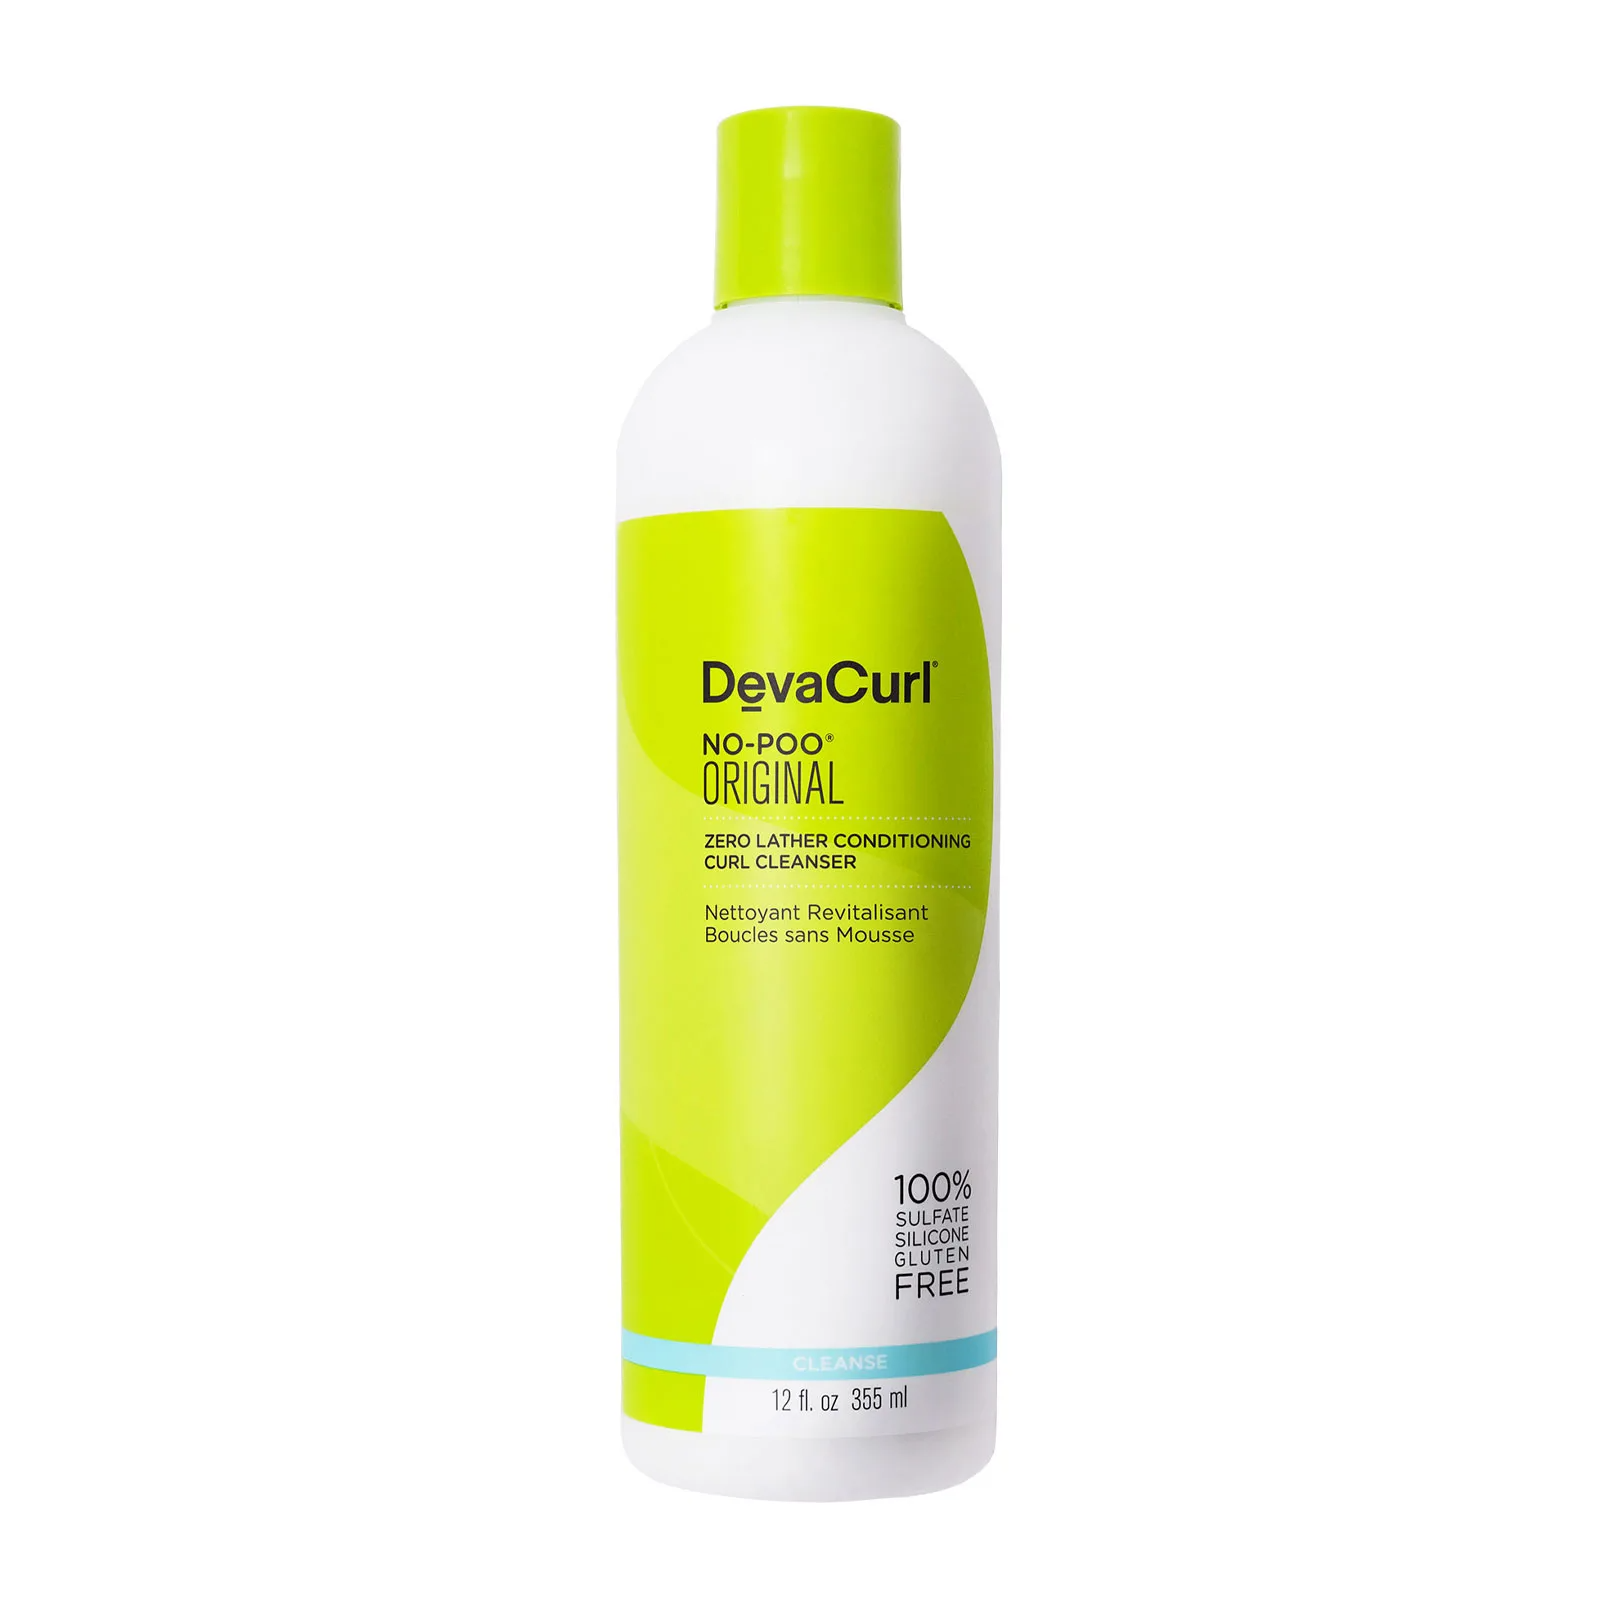 DevaCurl No-Poo Original Zero Lather Conditioning Cleanser, 12oz, Hair Care, London Loves Beauty